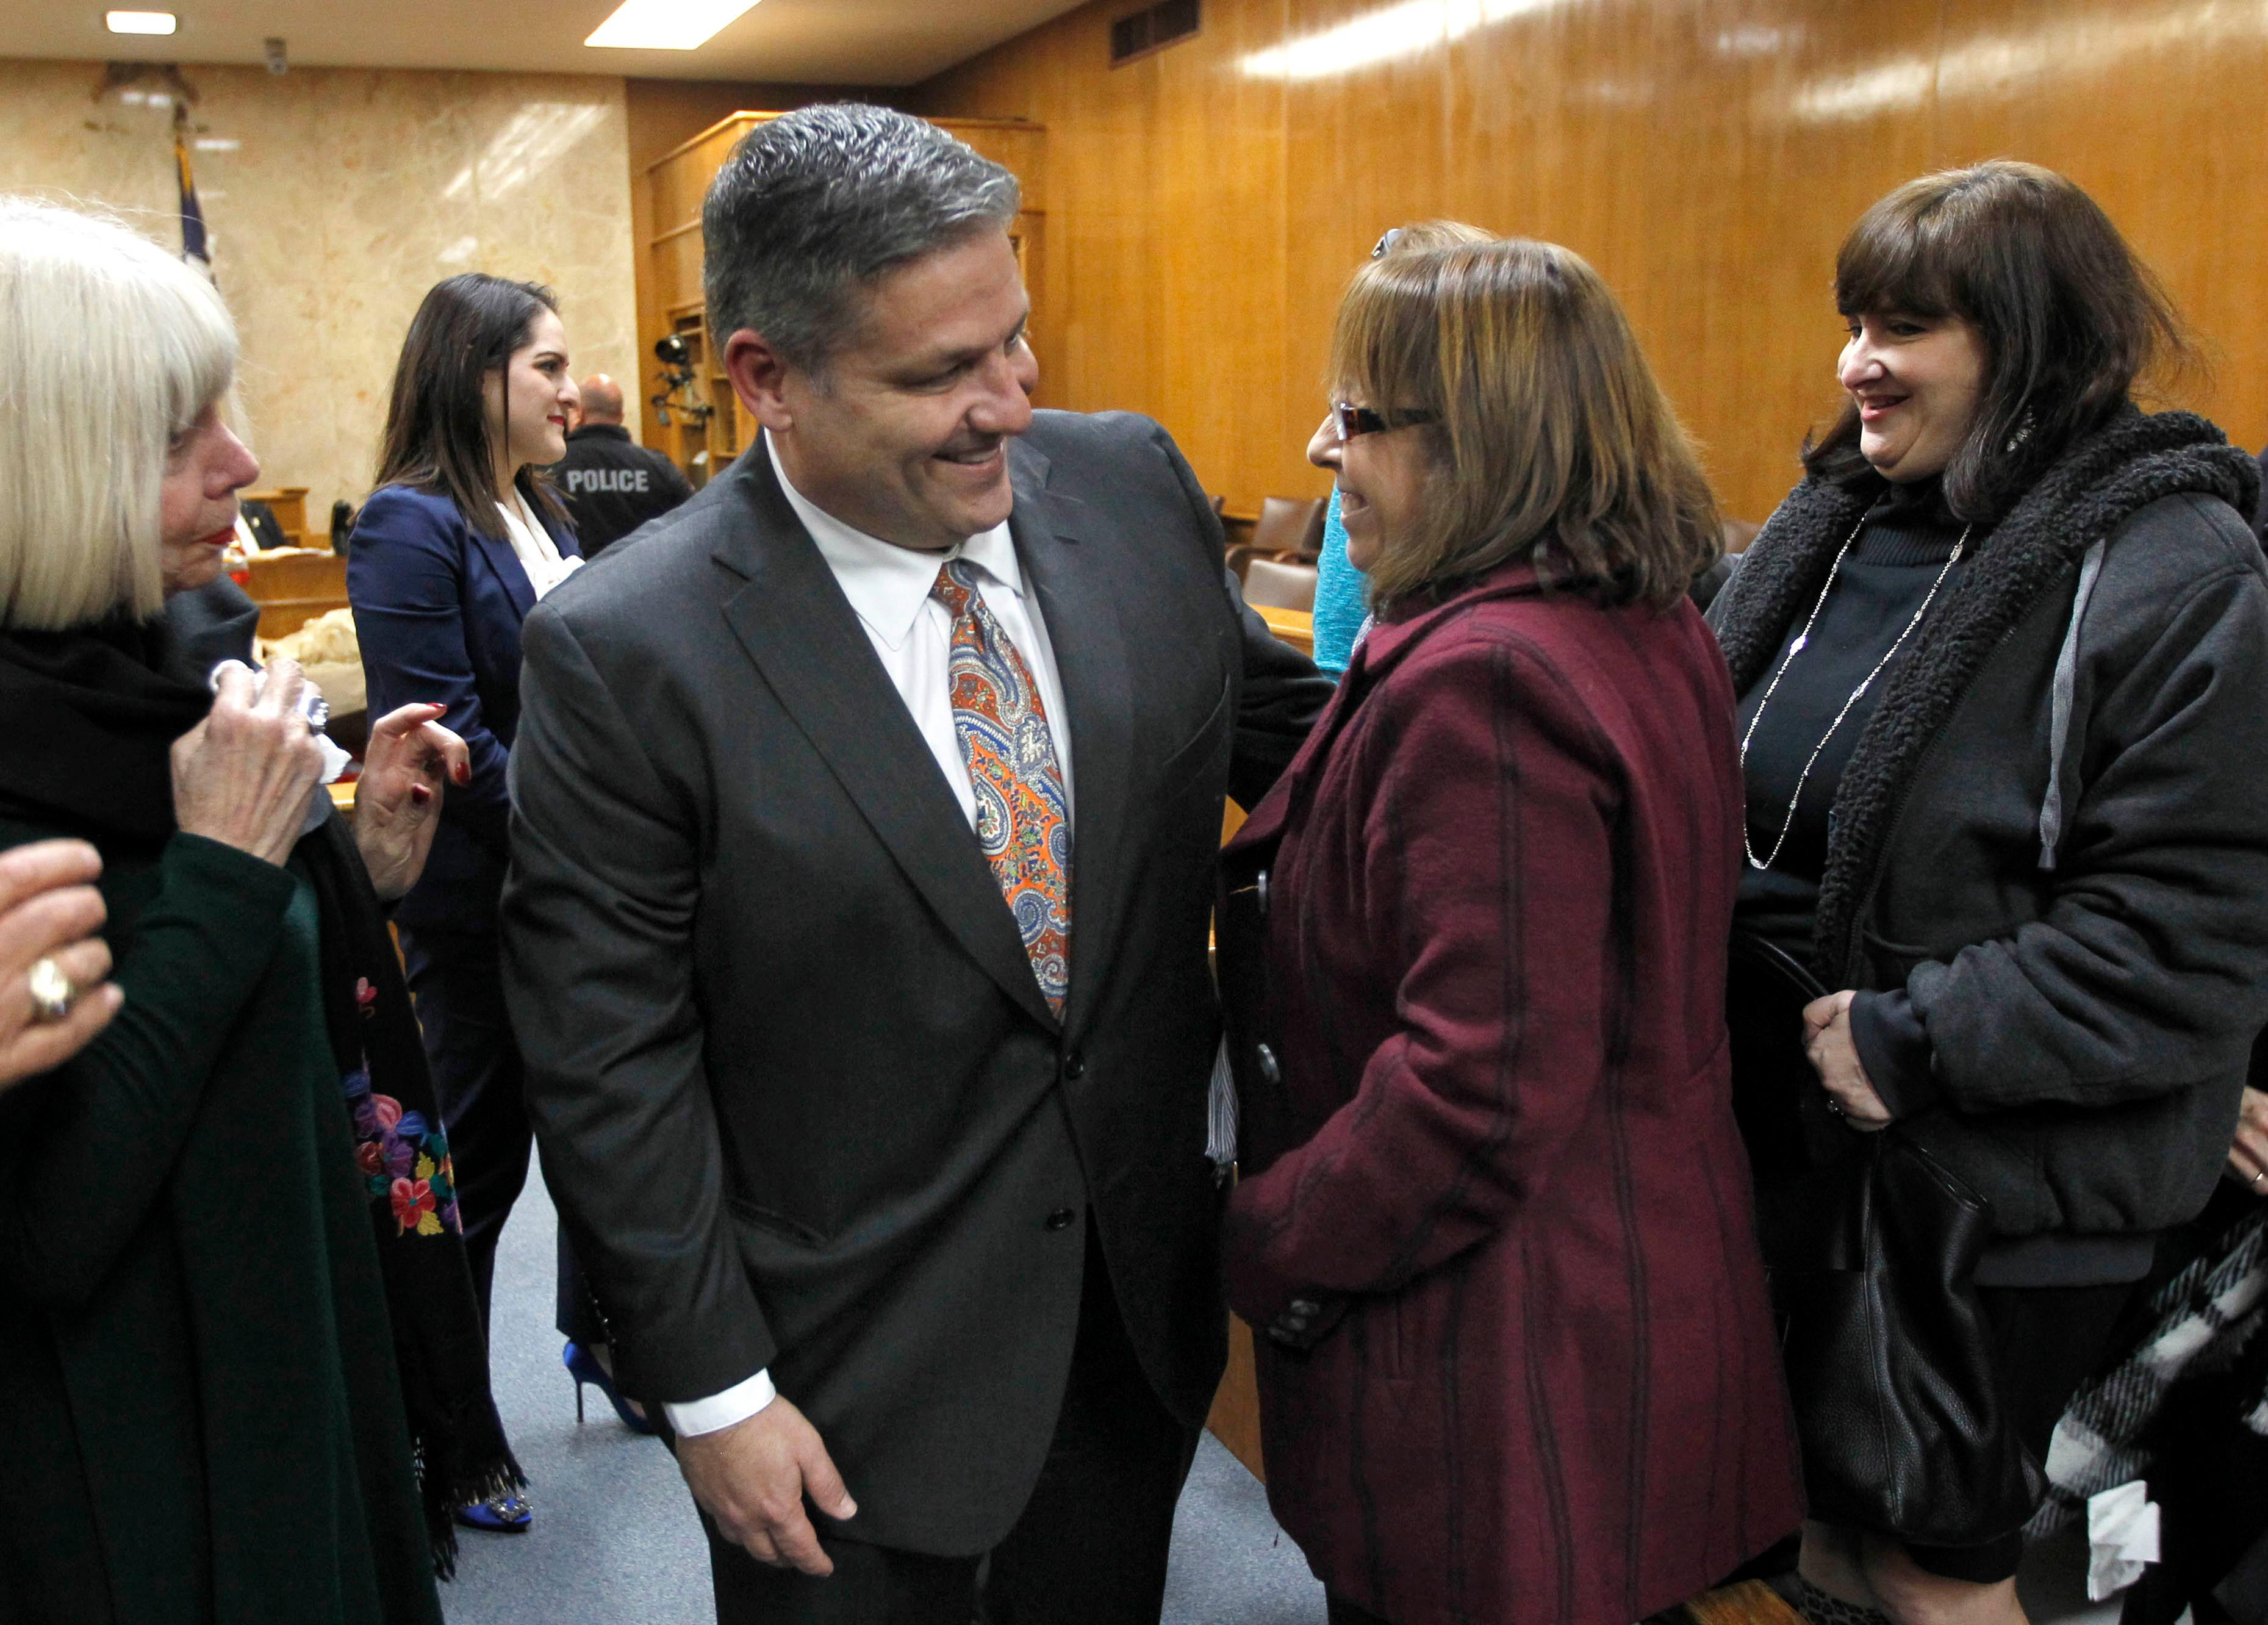 Hidalgo County Assistant District Attorney Michael Garza talks with Lynda de la Vi?a following the guilty verdict in John Bernard Feit's trial for the 1960 murder of Irene Garza in the 92nd state District Court Thursday, December 7, 2017, at the Hidalgo County Courthouse in Edinburg. De la Vi?a is a relative of the Irene Garza.  (Nathan Lambrecht/The Monitor/Pool)